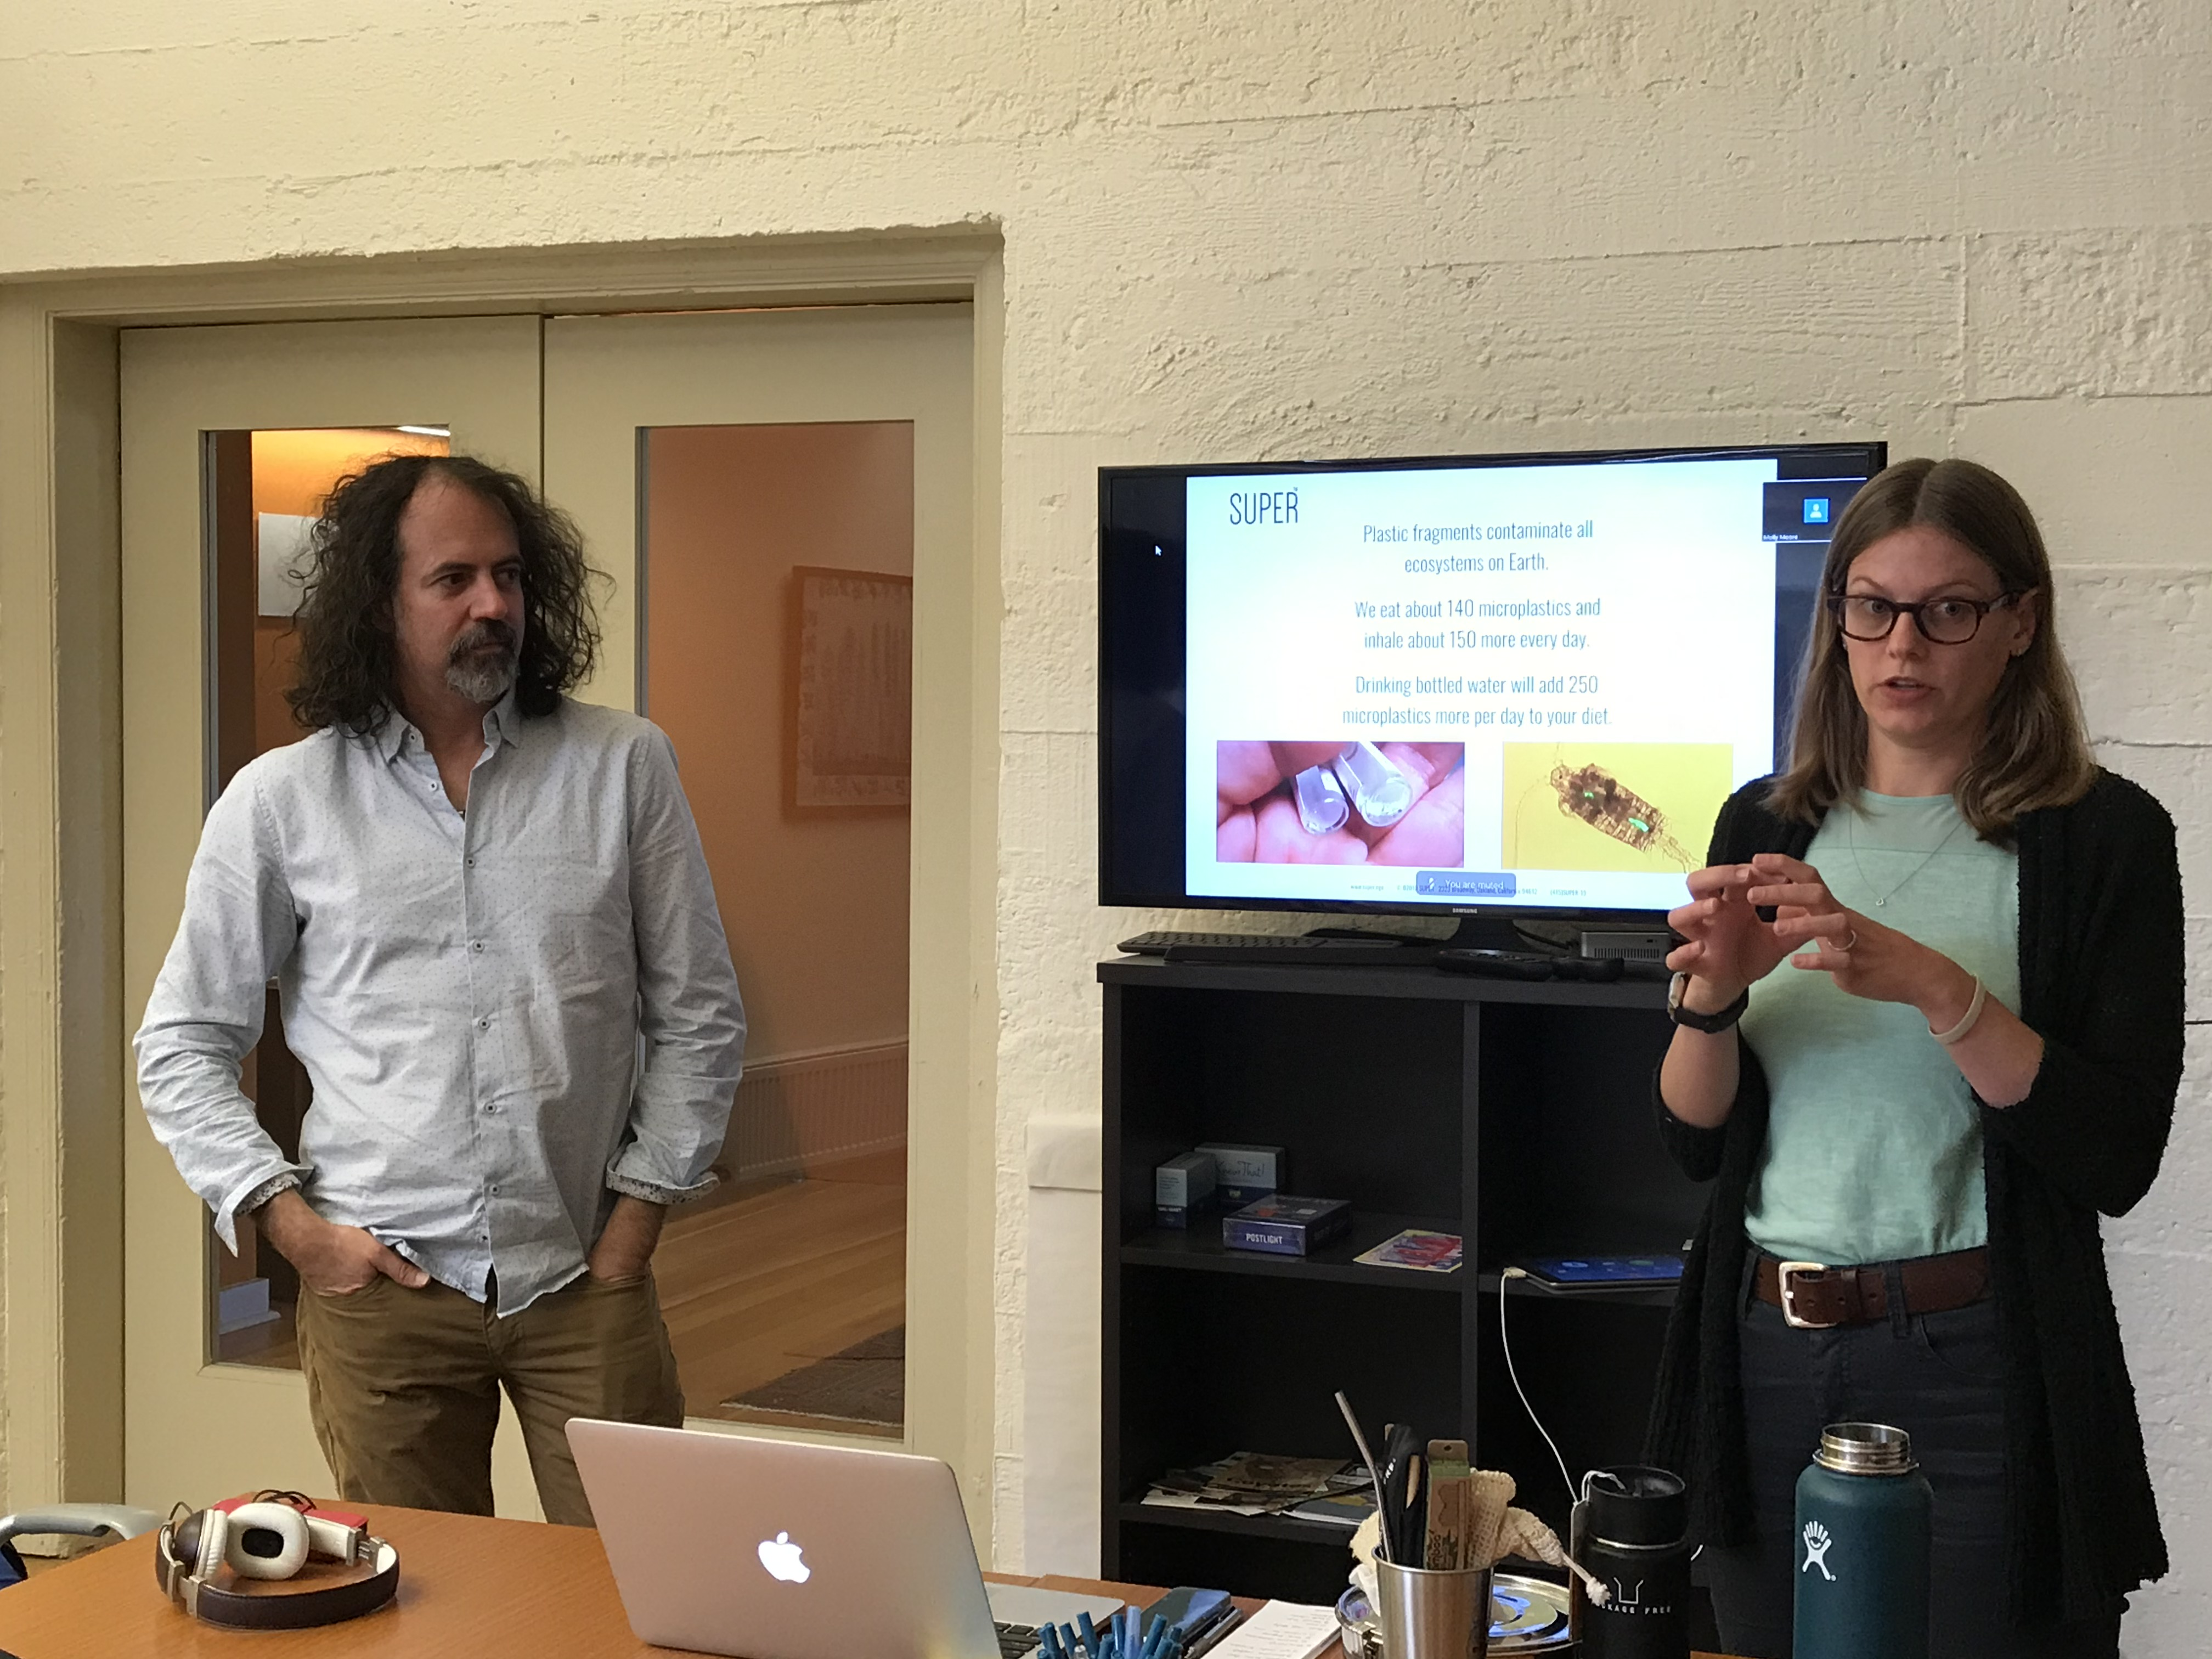 Manuel Maqueda and Molly Moore present the SUPER workshop